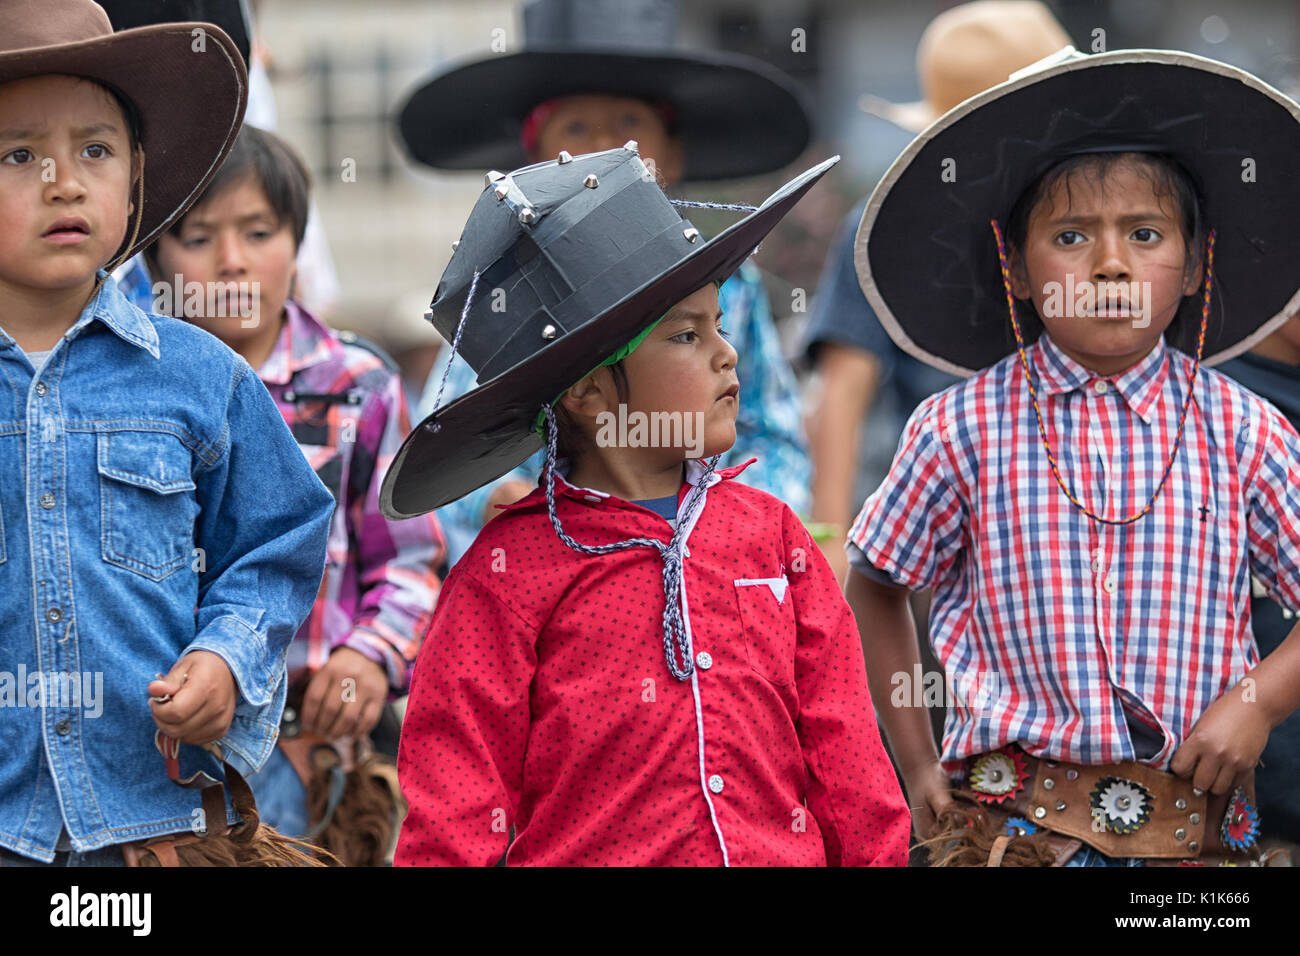 June 29, 2017 Cotacachi, Ecuador: kichwa indigenous children are an active part of the  Inti Raymi festival - Stock Image